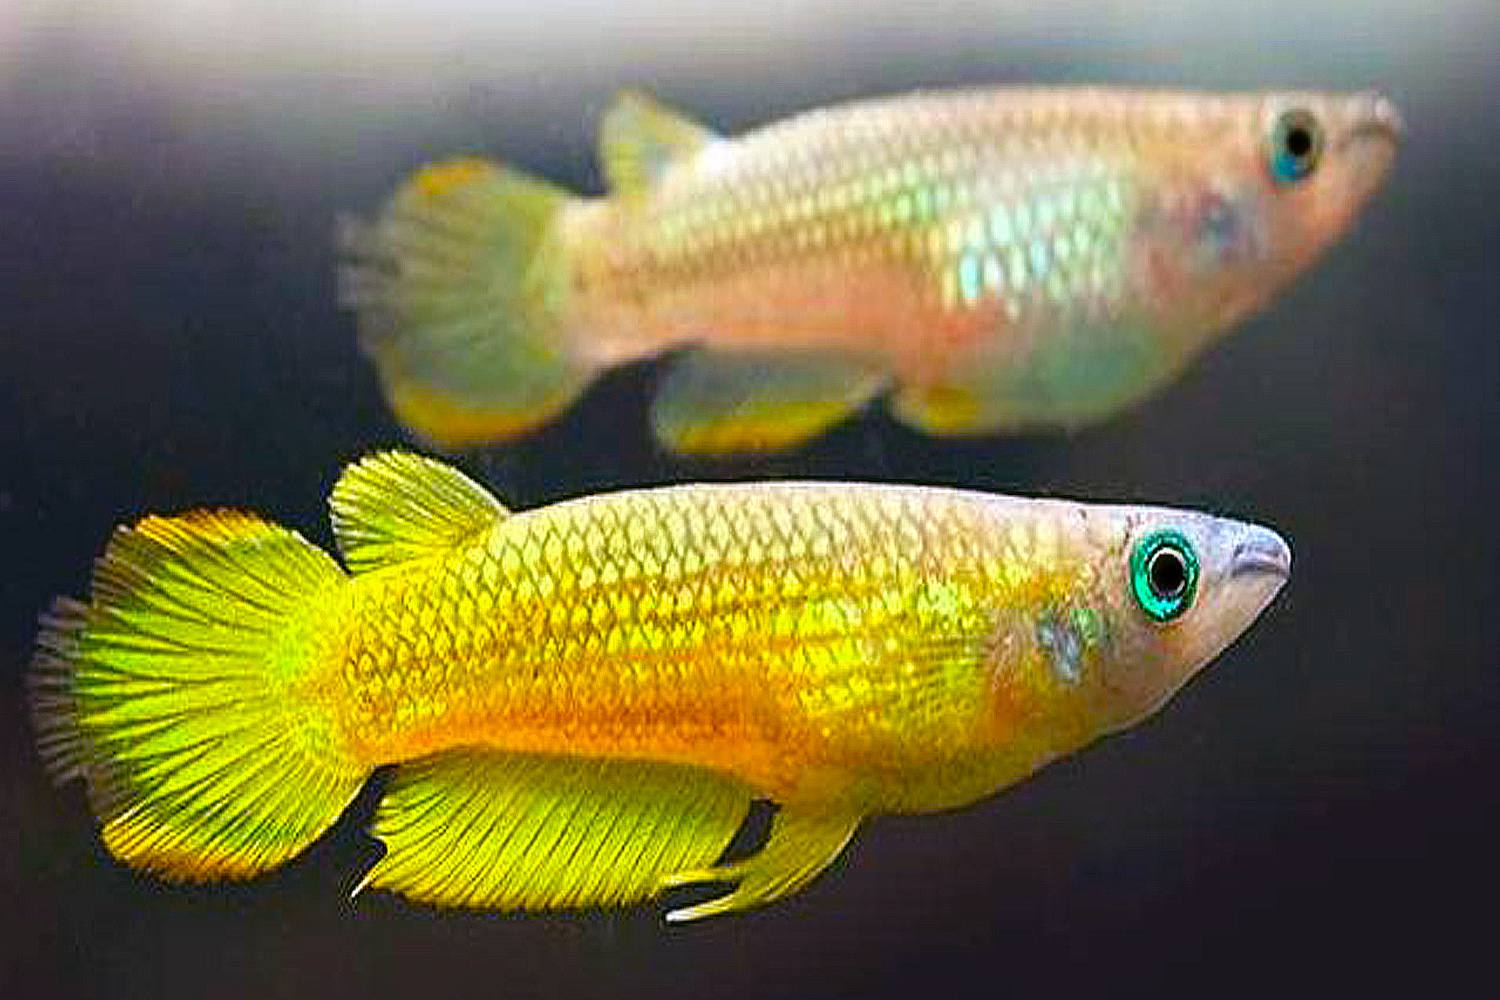 Two yellow Limeatus (Aplocheius lineatus) in water.